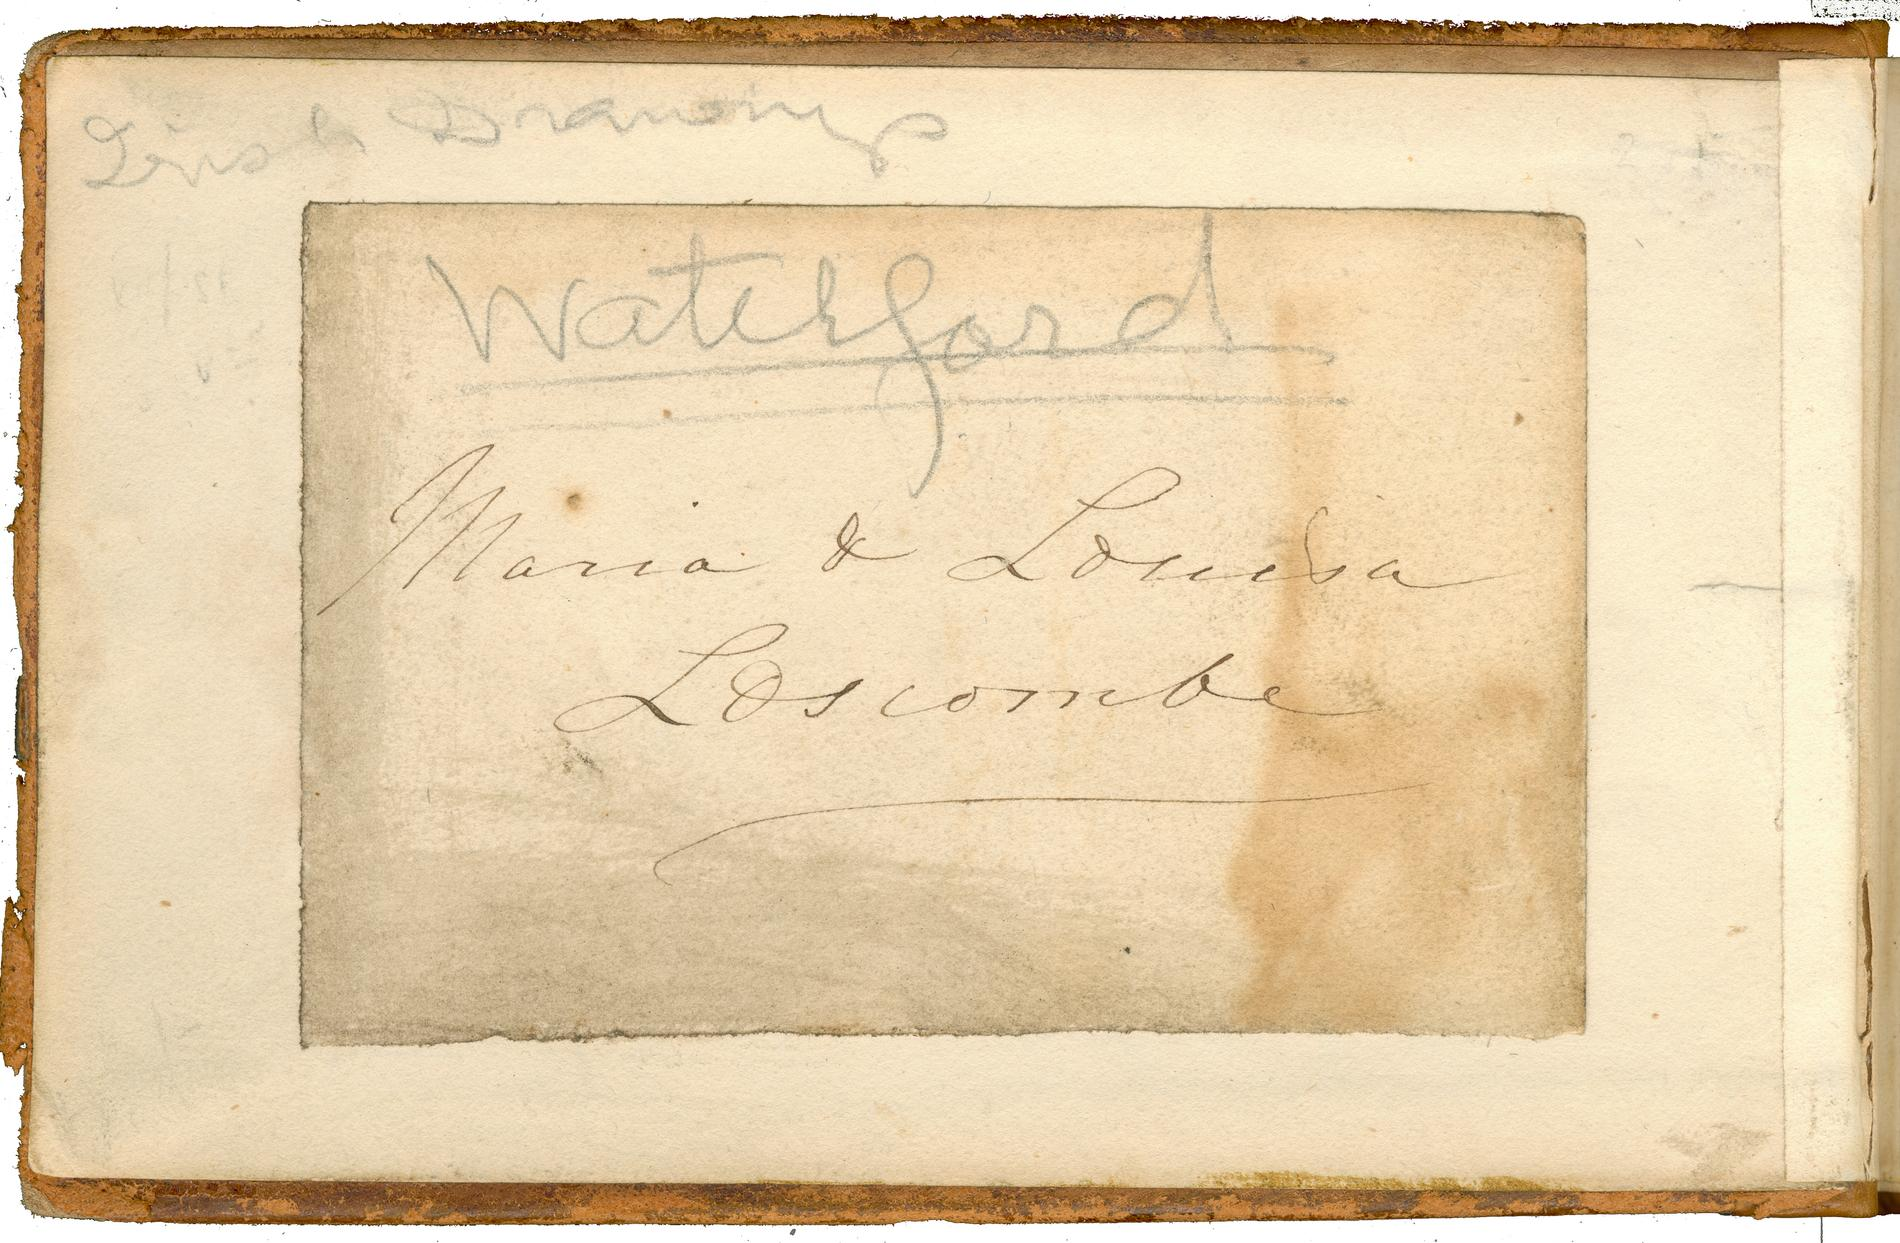 Inside of front cover (Manuscript Note)